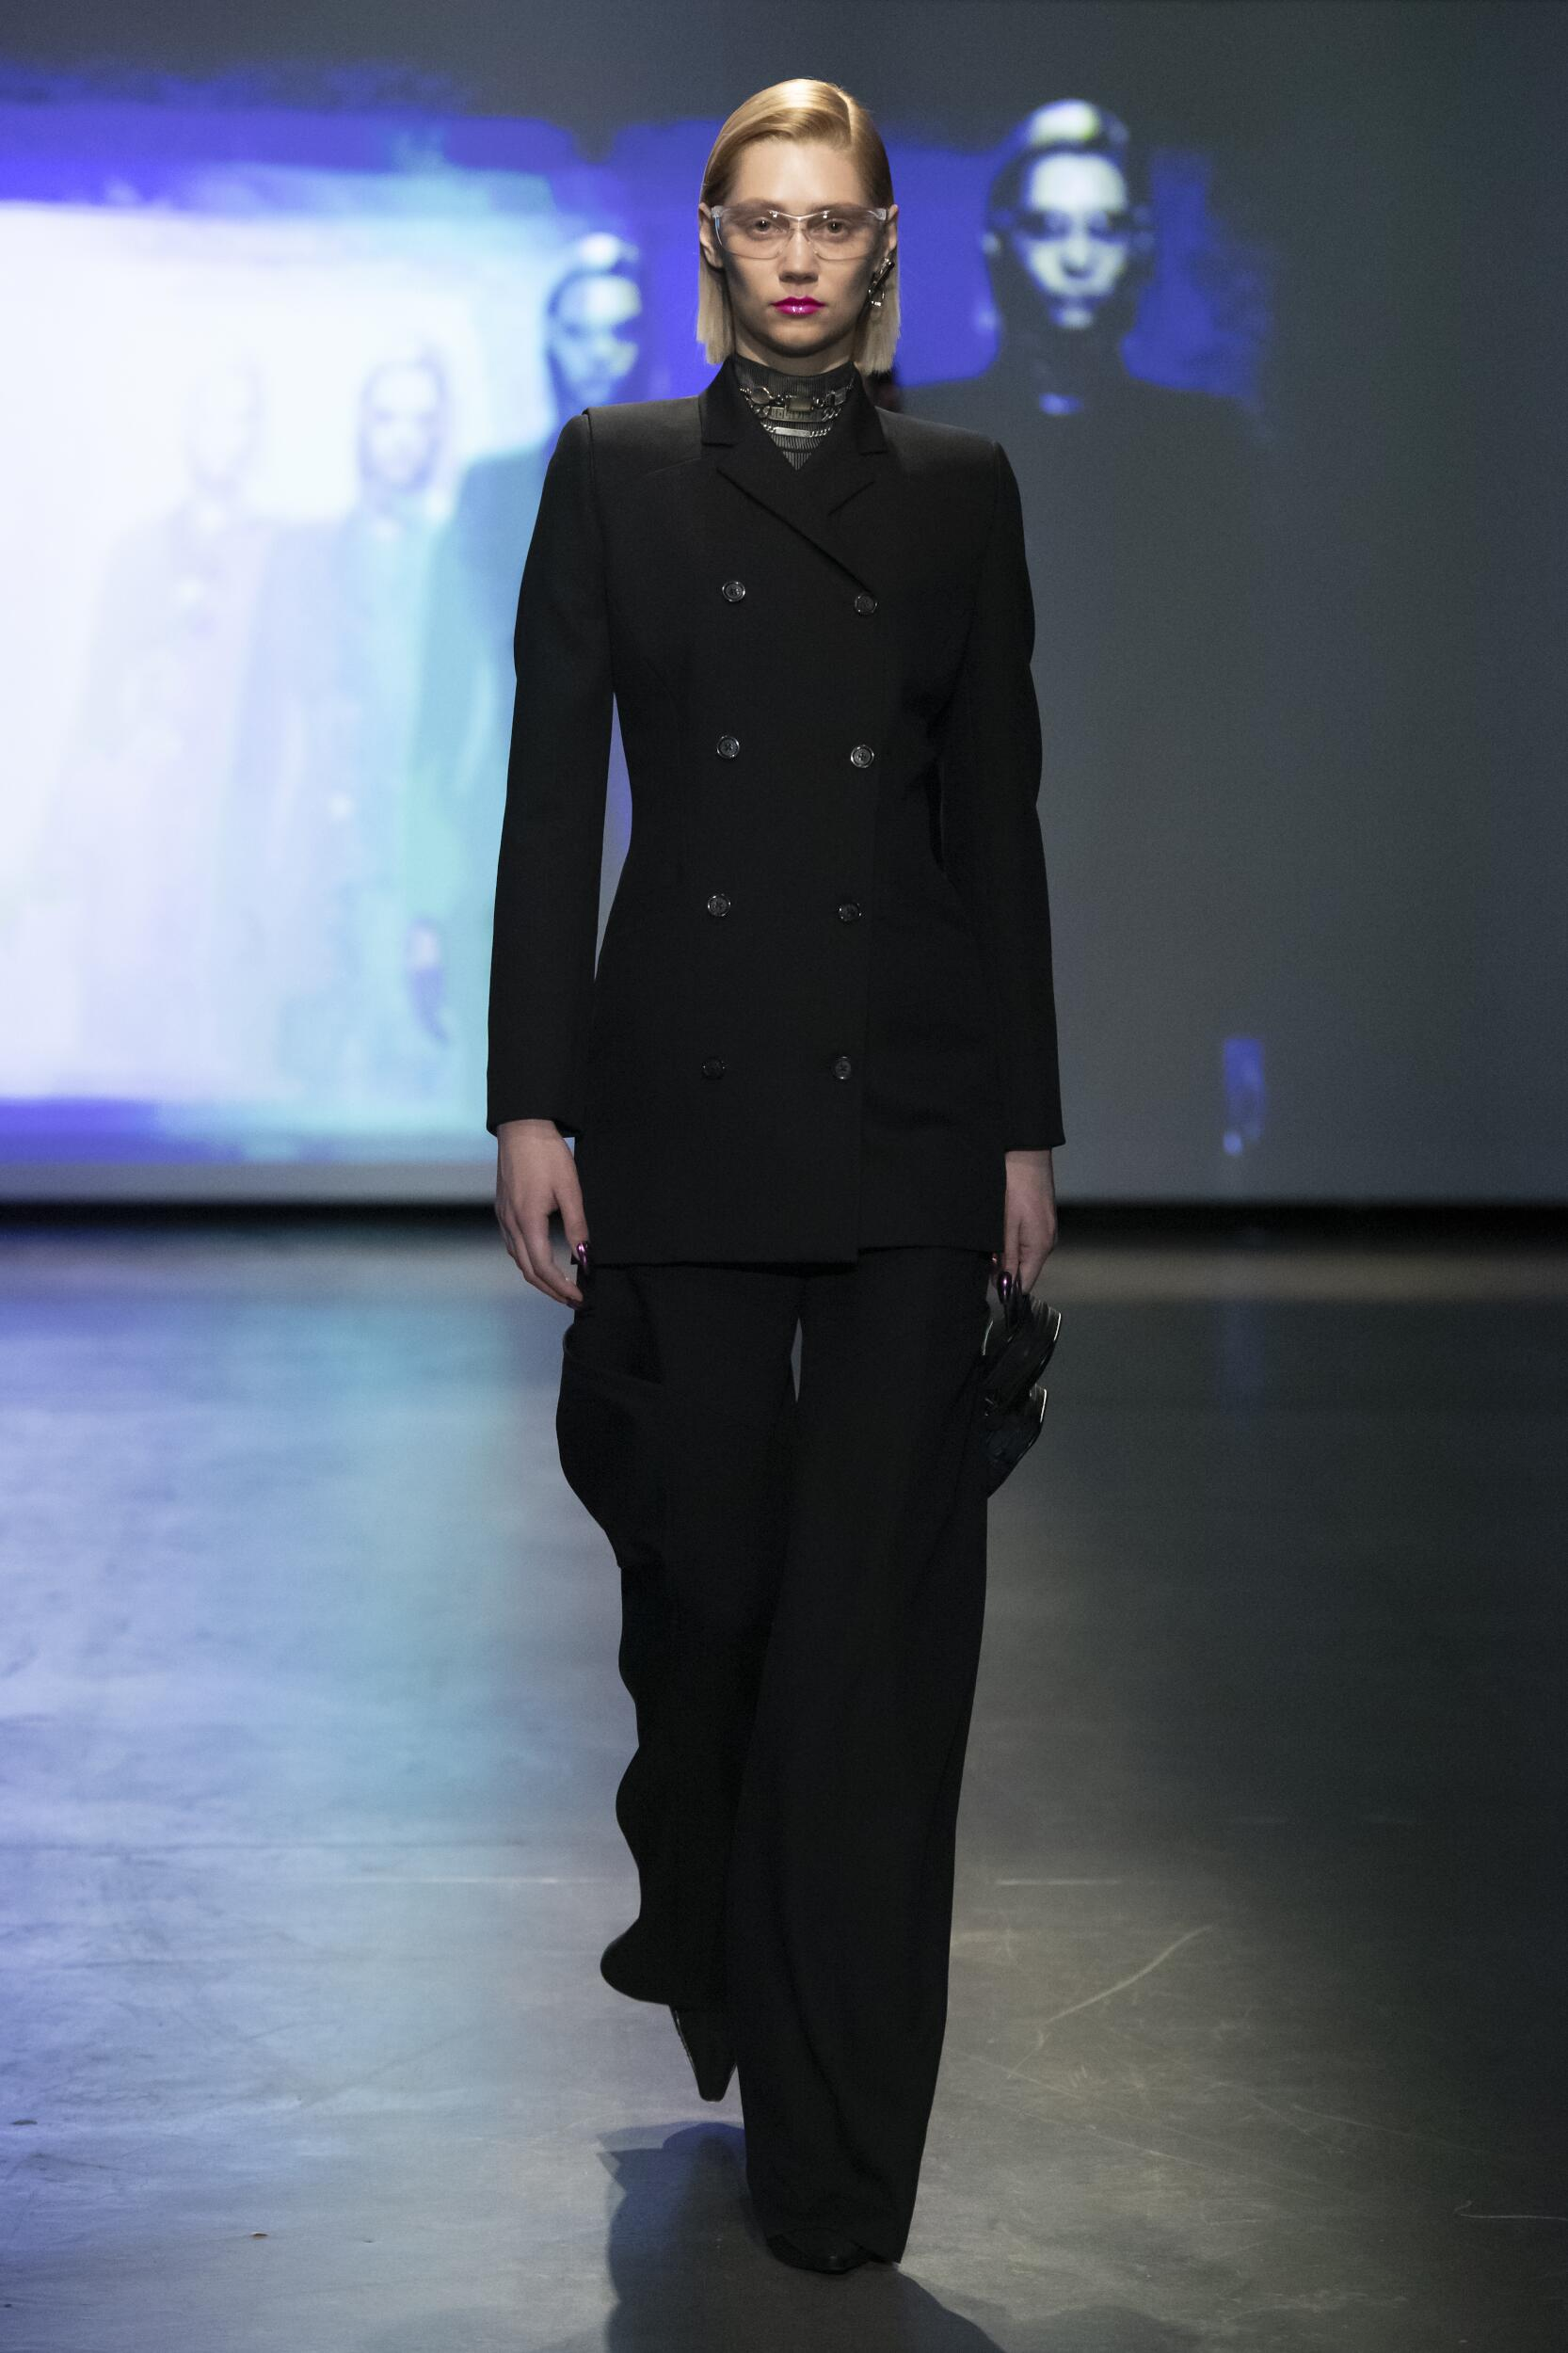 Runway Marine Serre Fall Winter 2020 Women's Collection Paris Fashion Week